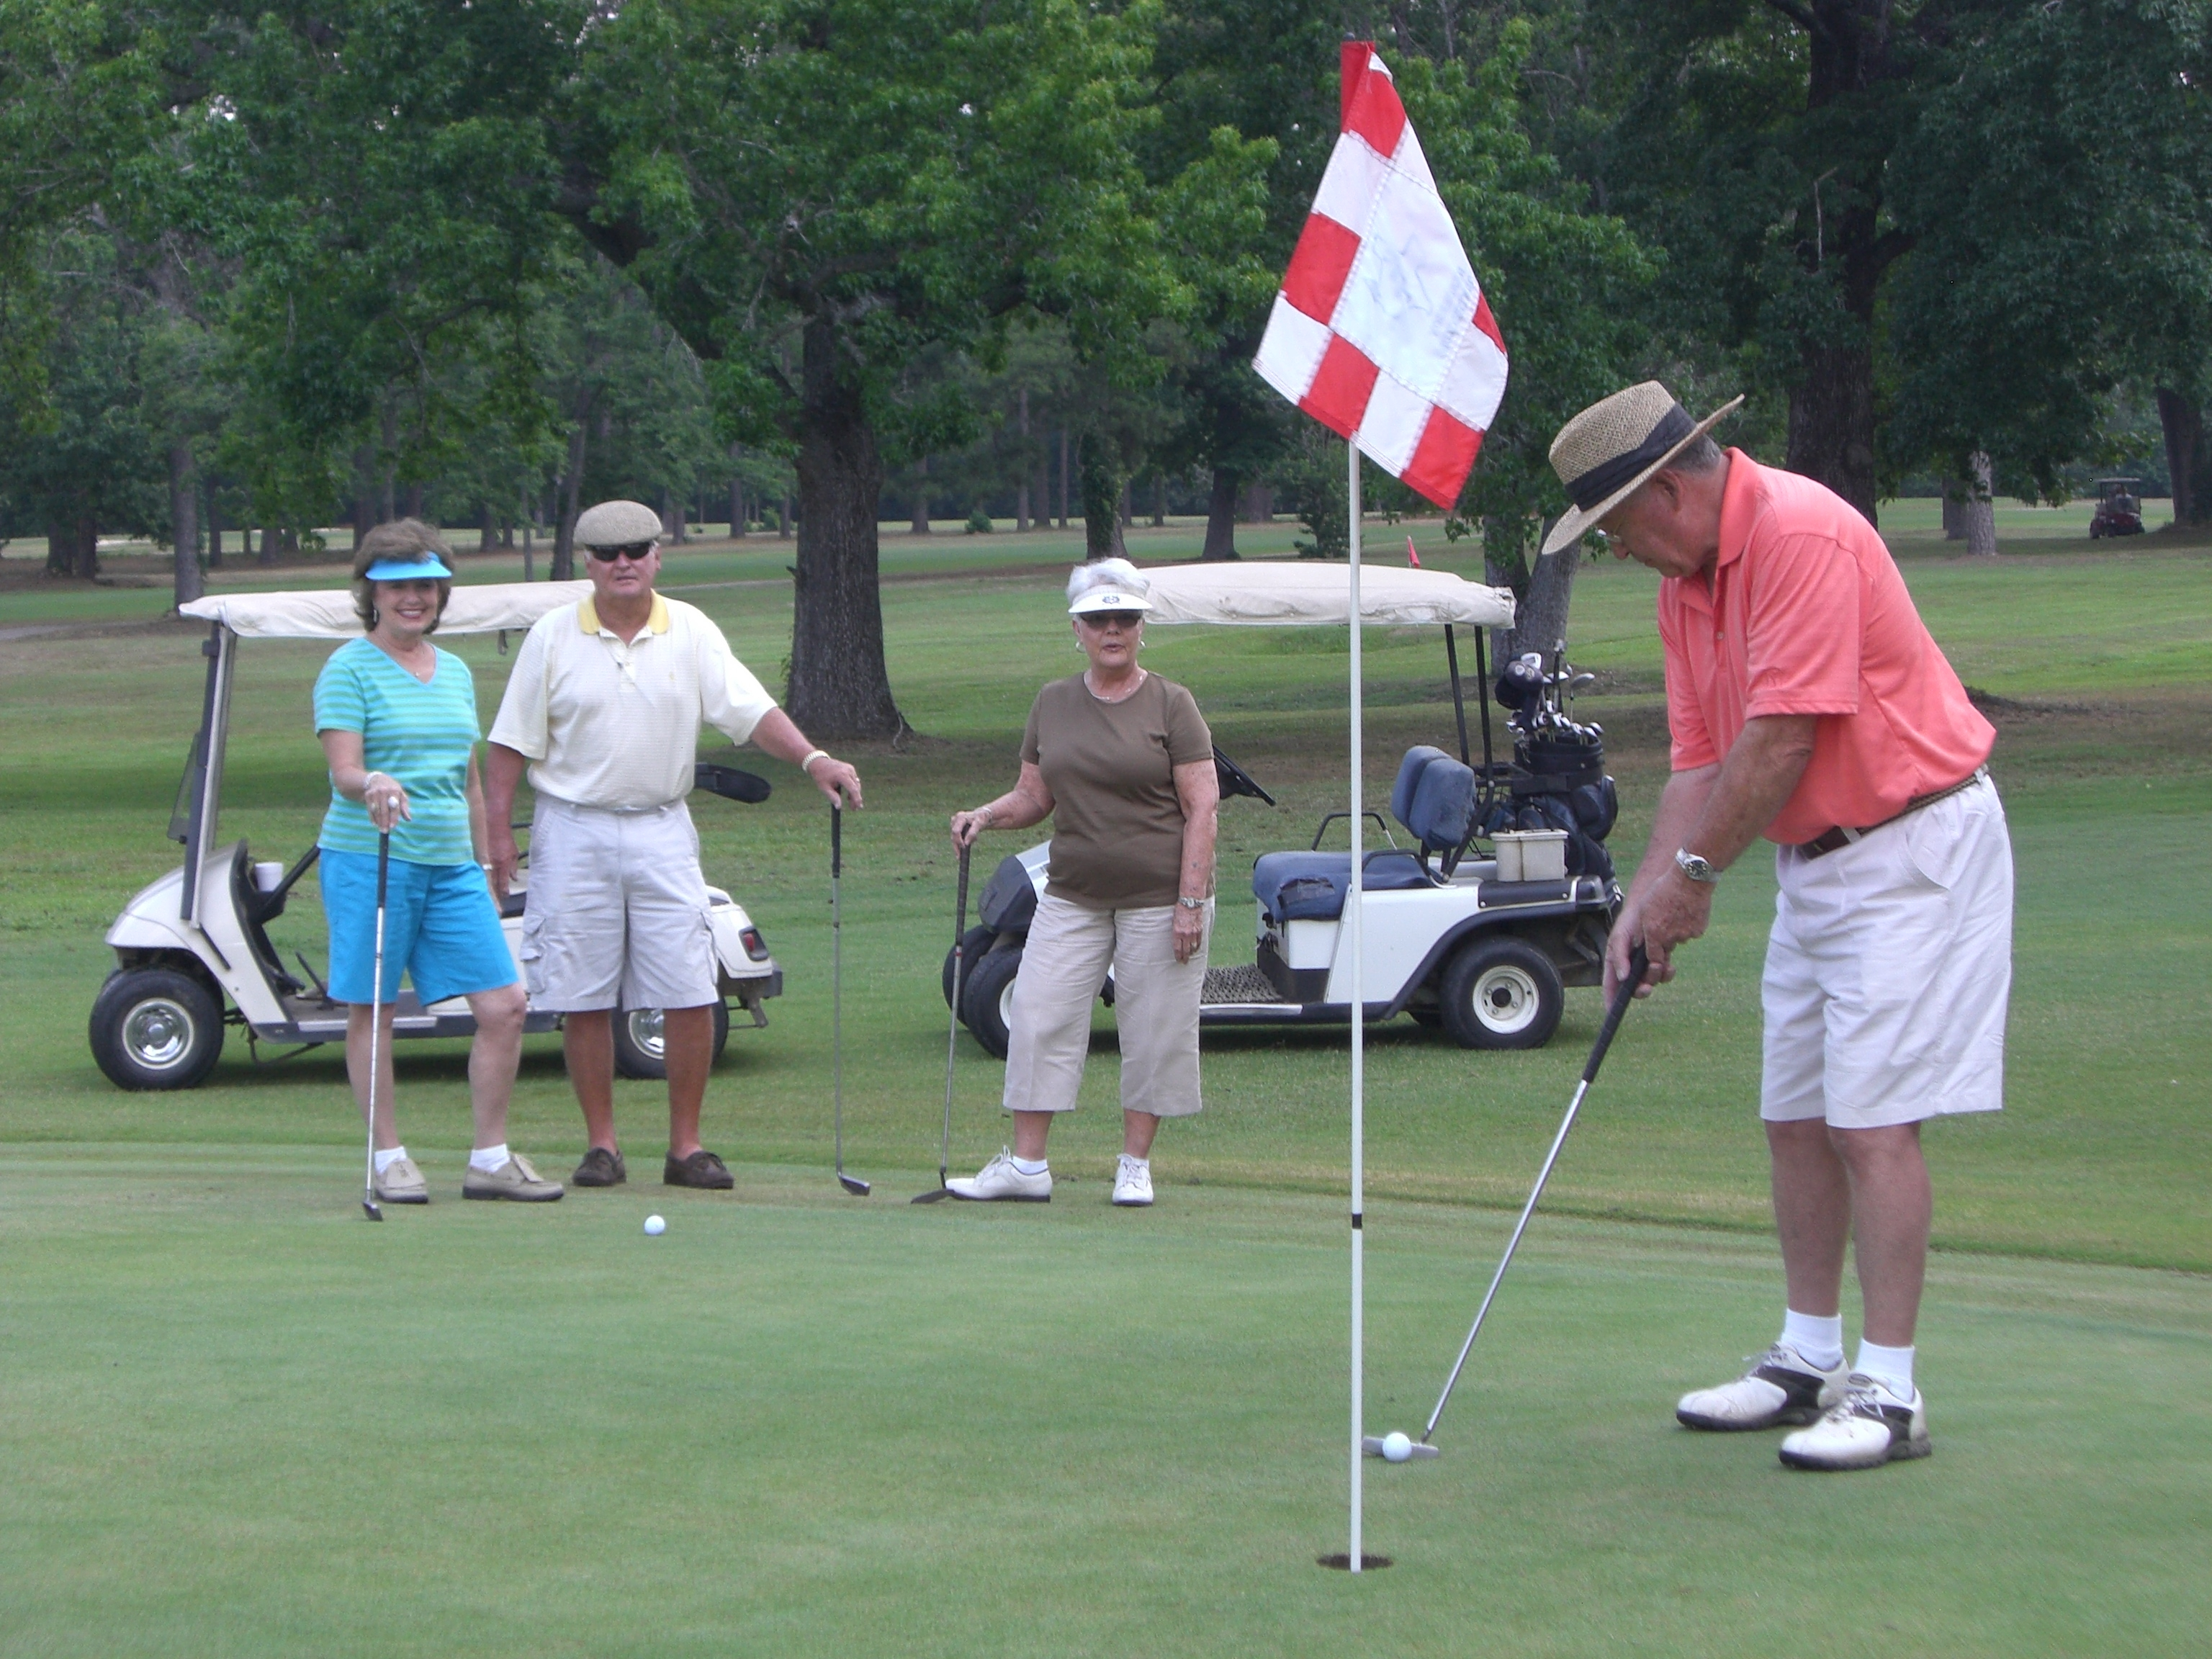 golf horizontal 2010.jpg